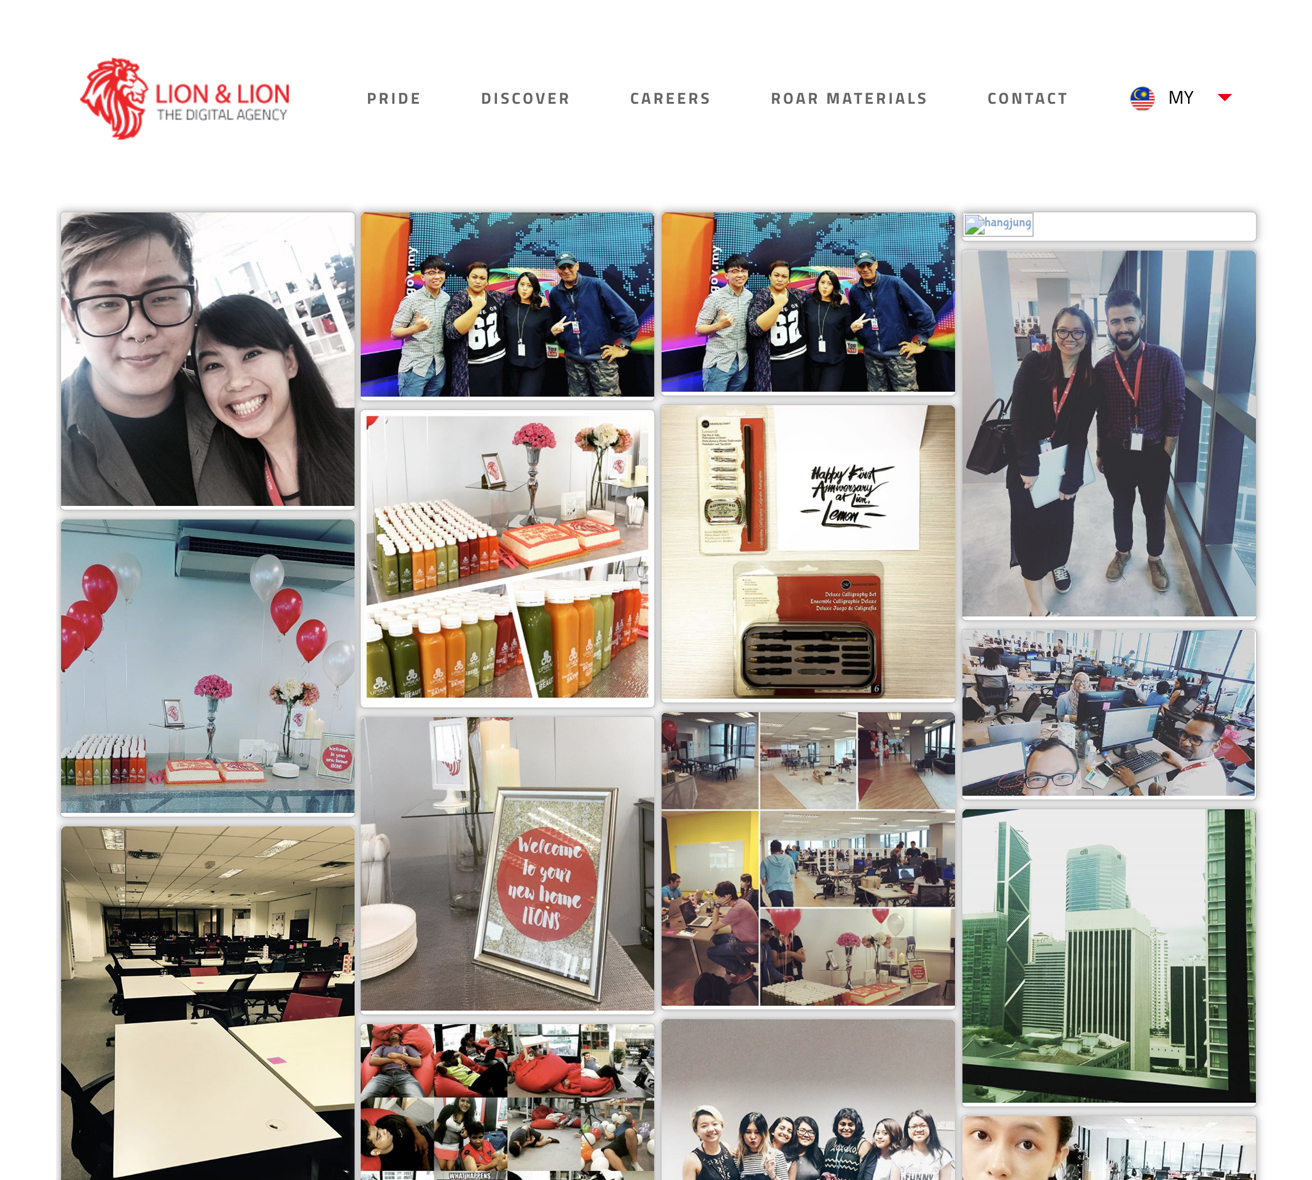 Social wall displayed on the corporate website of Lion & Lion to show the work environment